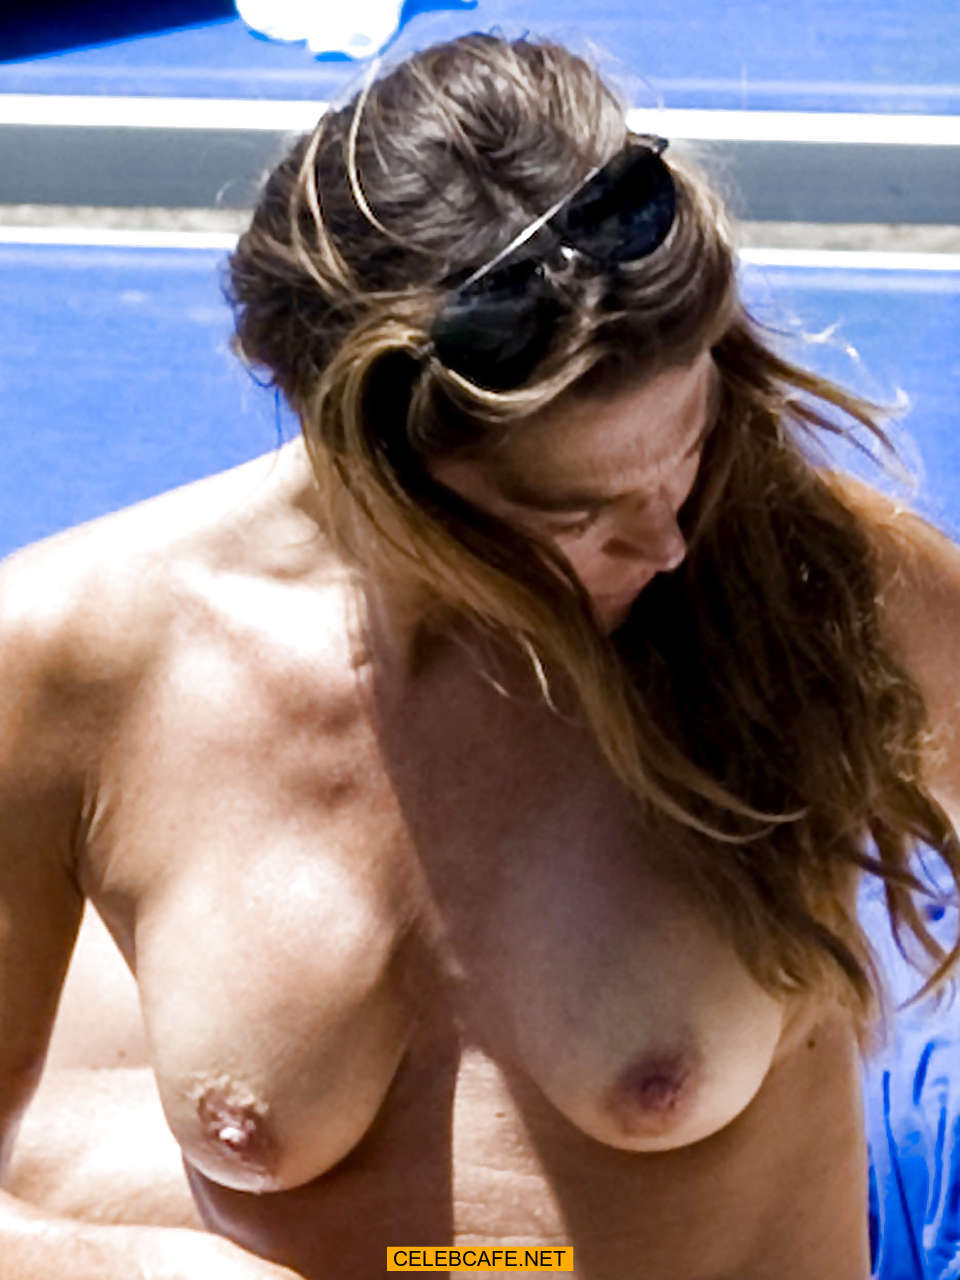 Nude paparazzi picture picture